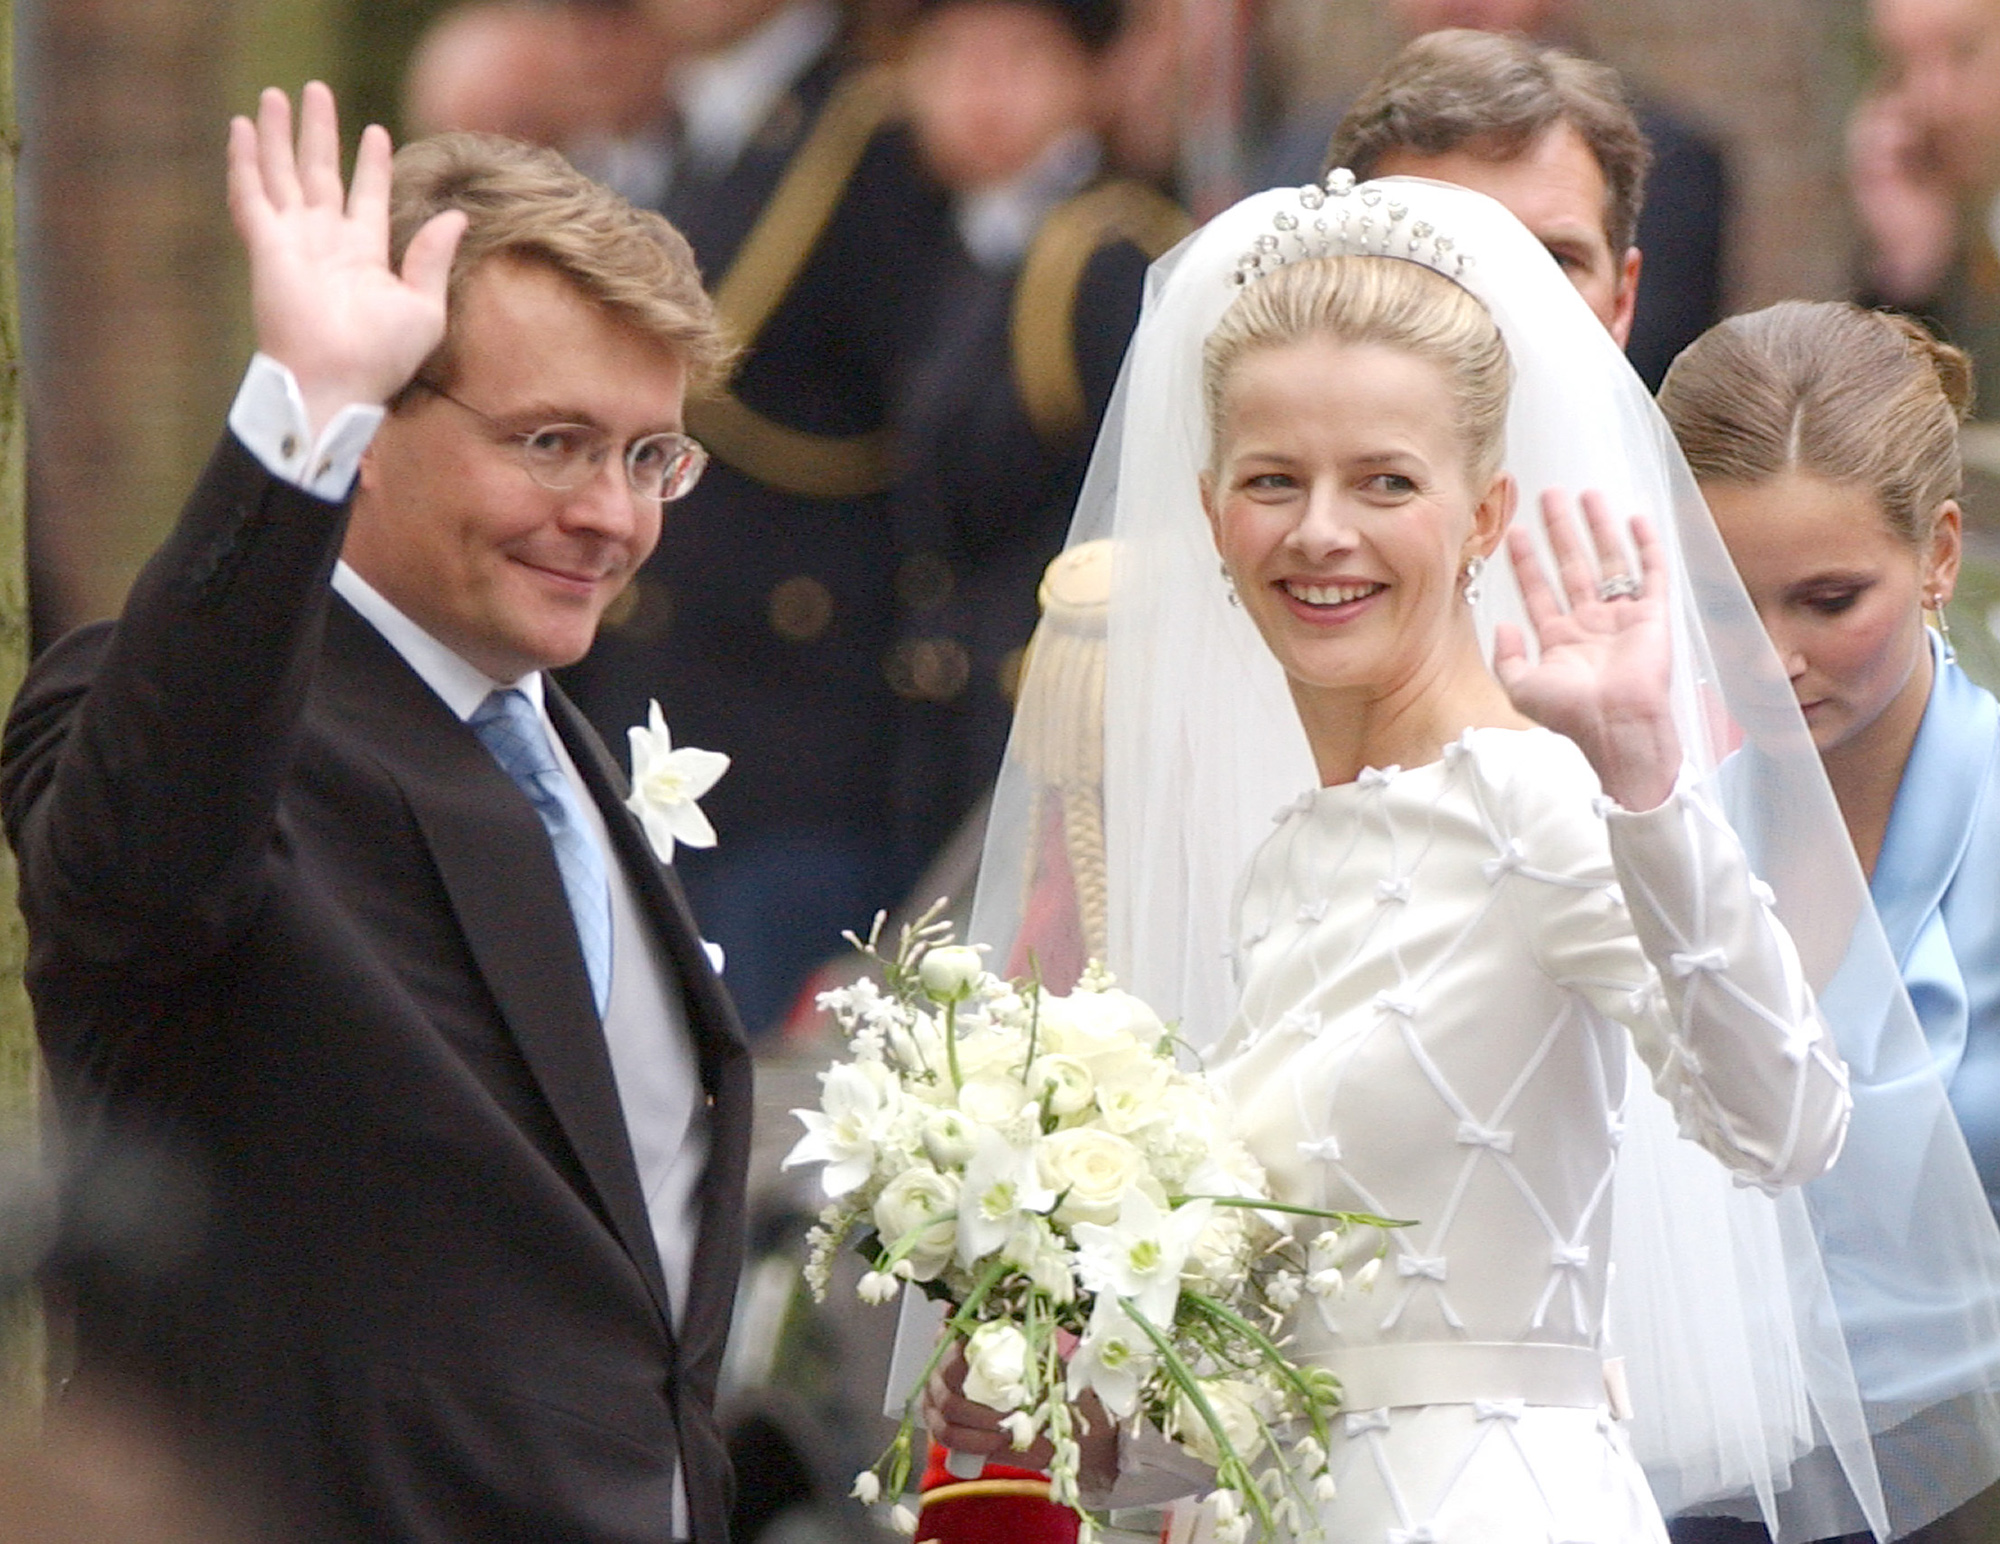 Wedding Of Prince Johan Friso & Mabel Wisse Smit